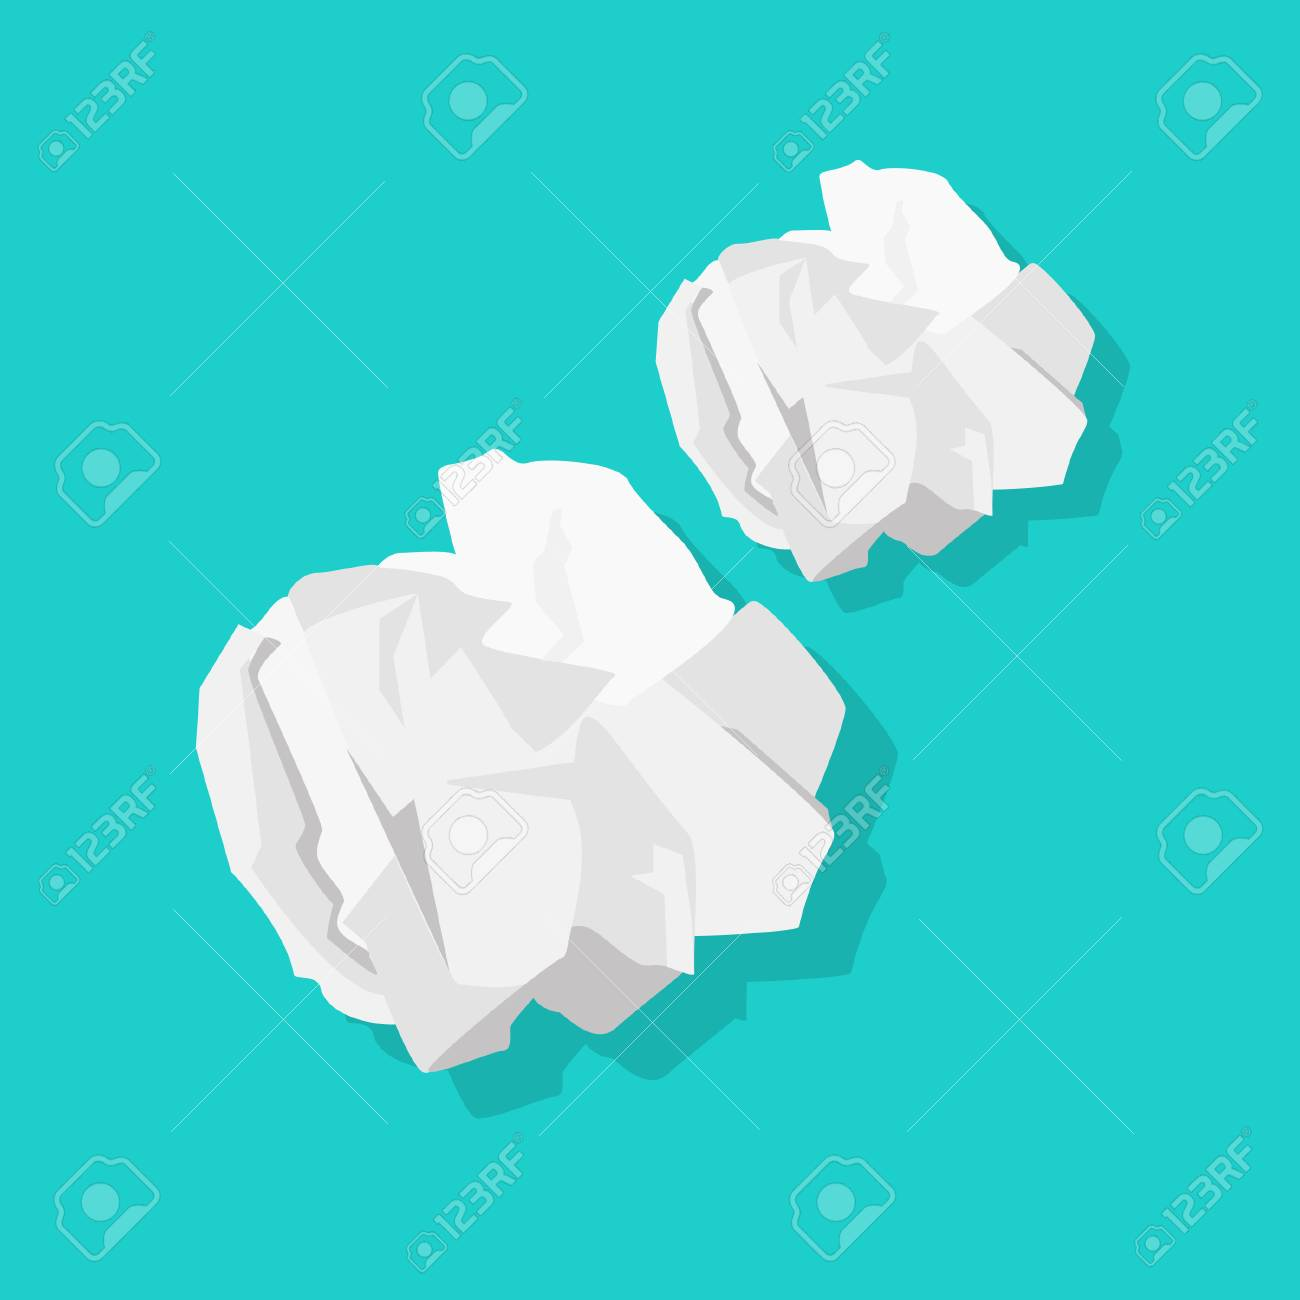 Crumpled paper ball vector illustration isolated on blue background - 101686560